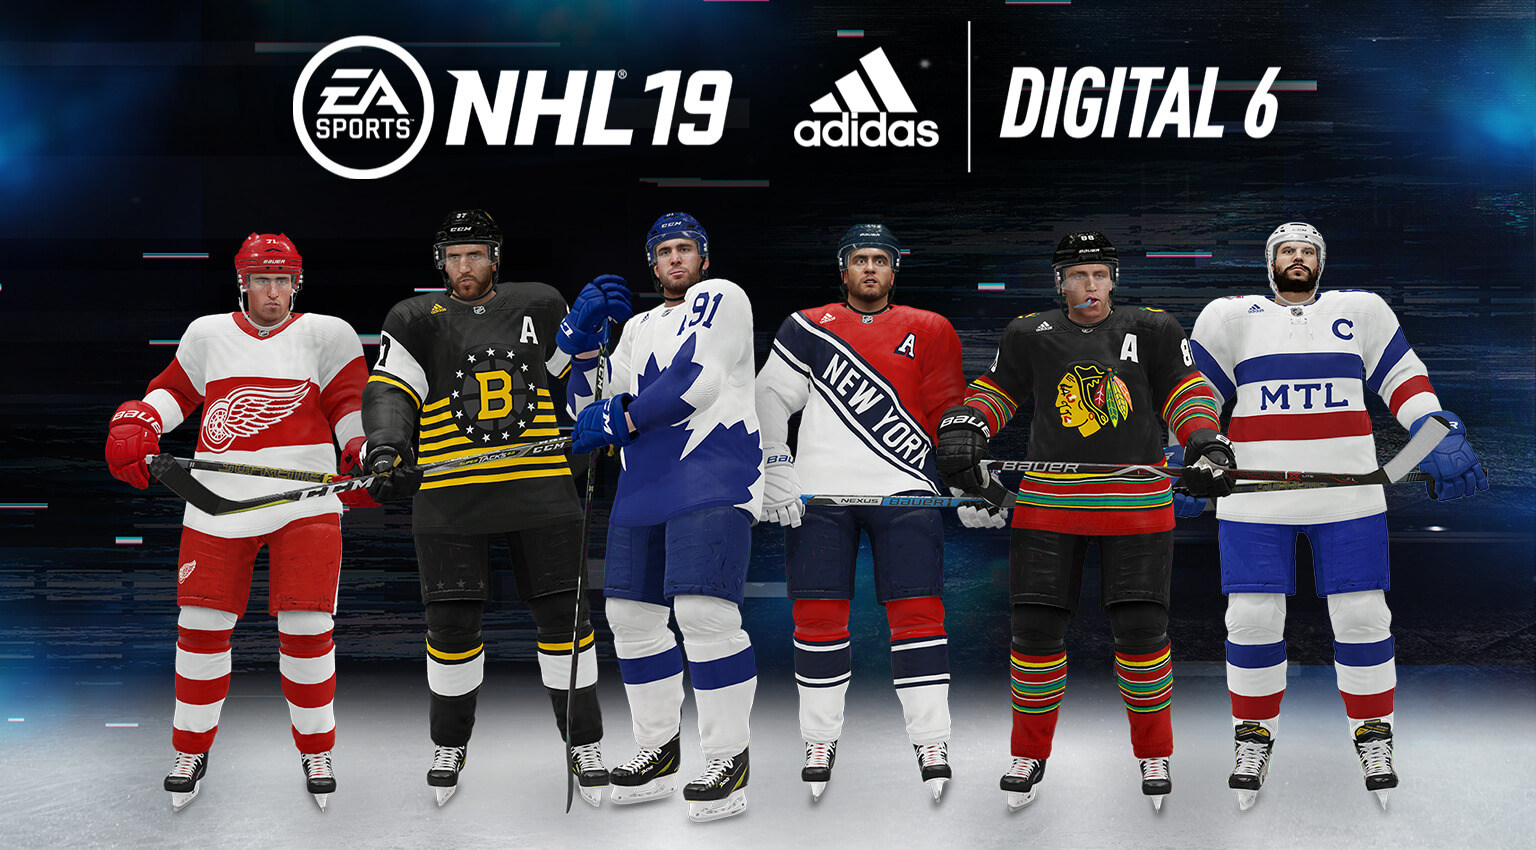 NHL® 19 Digital 6 Jerseys in partnership with adidas – EA